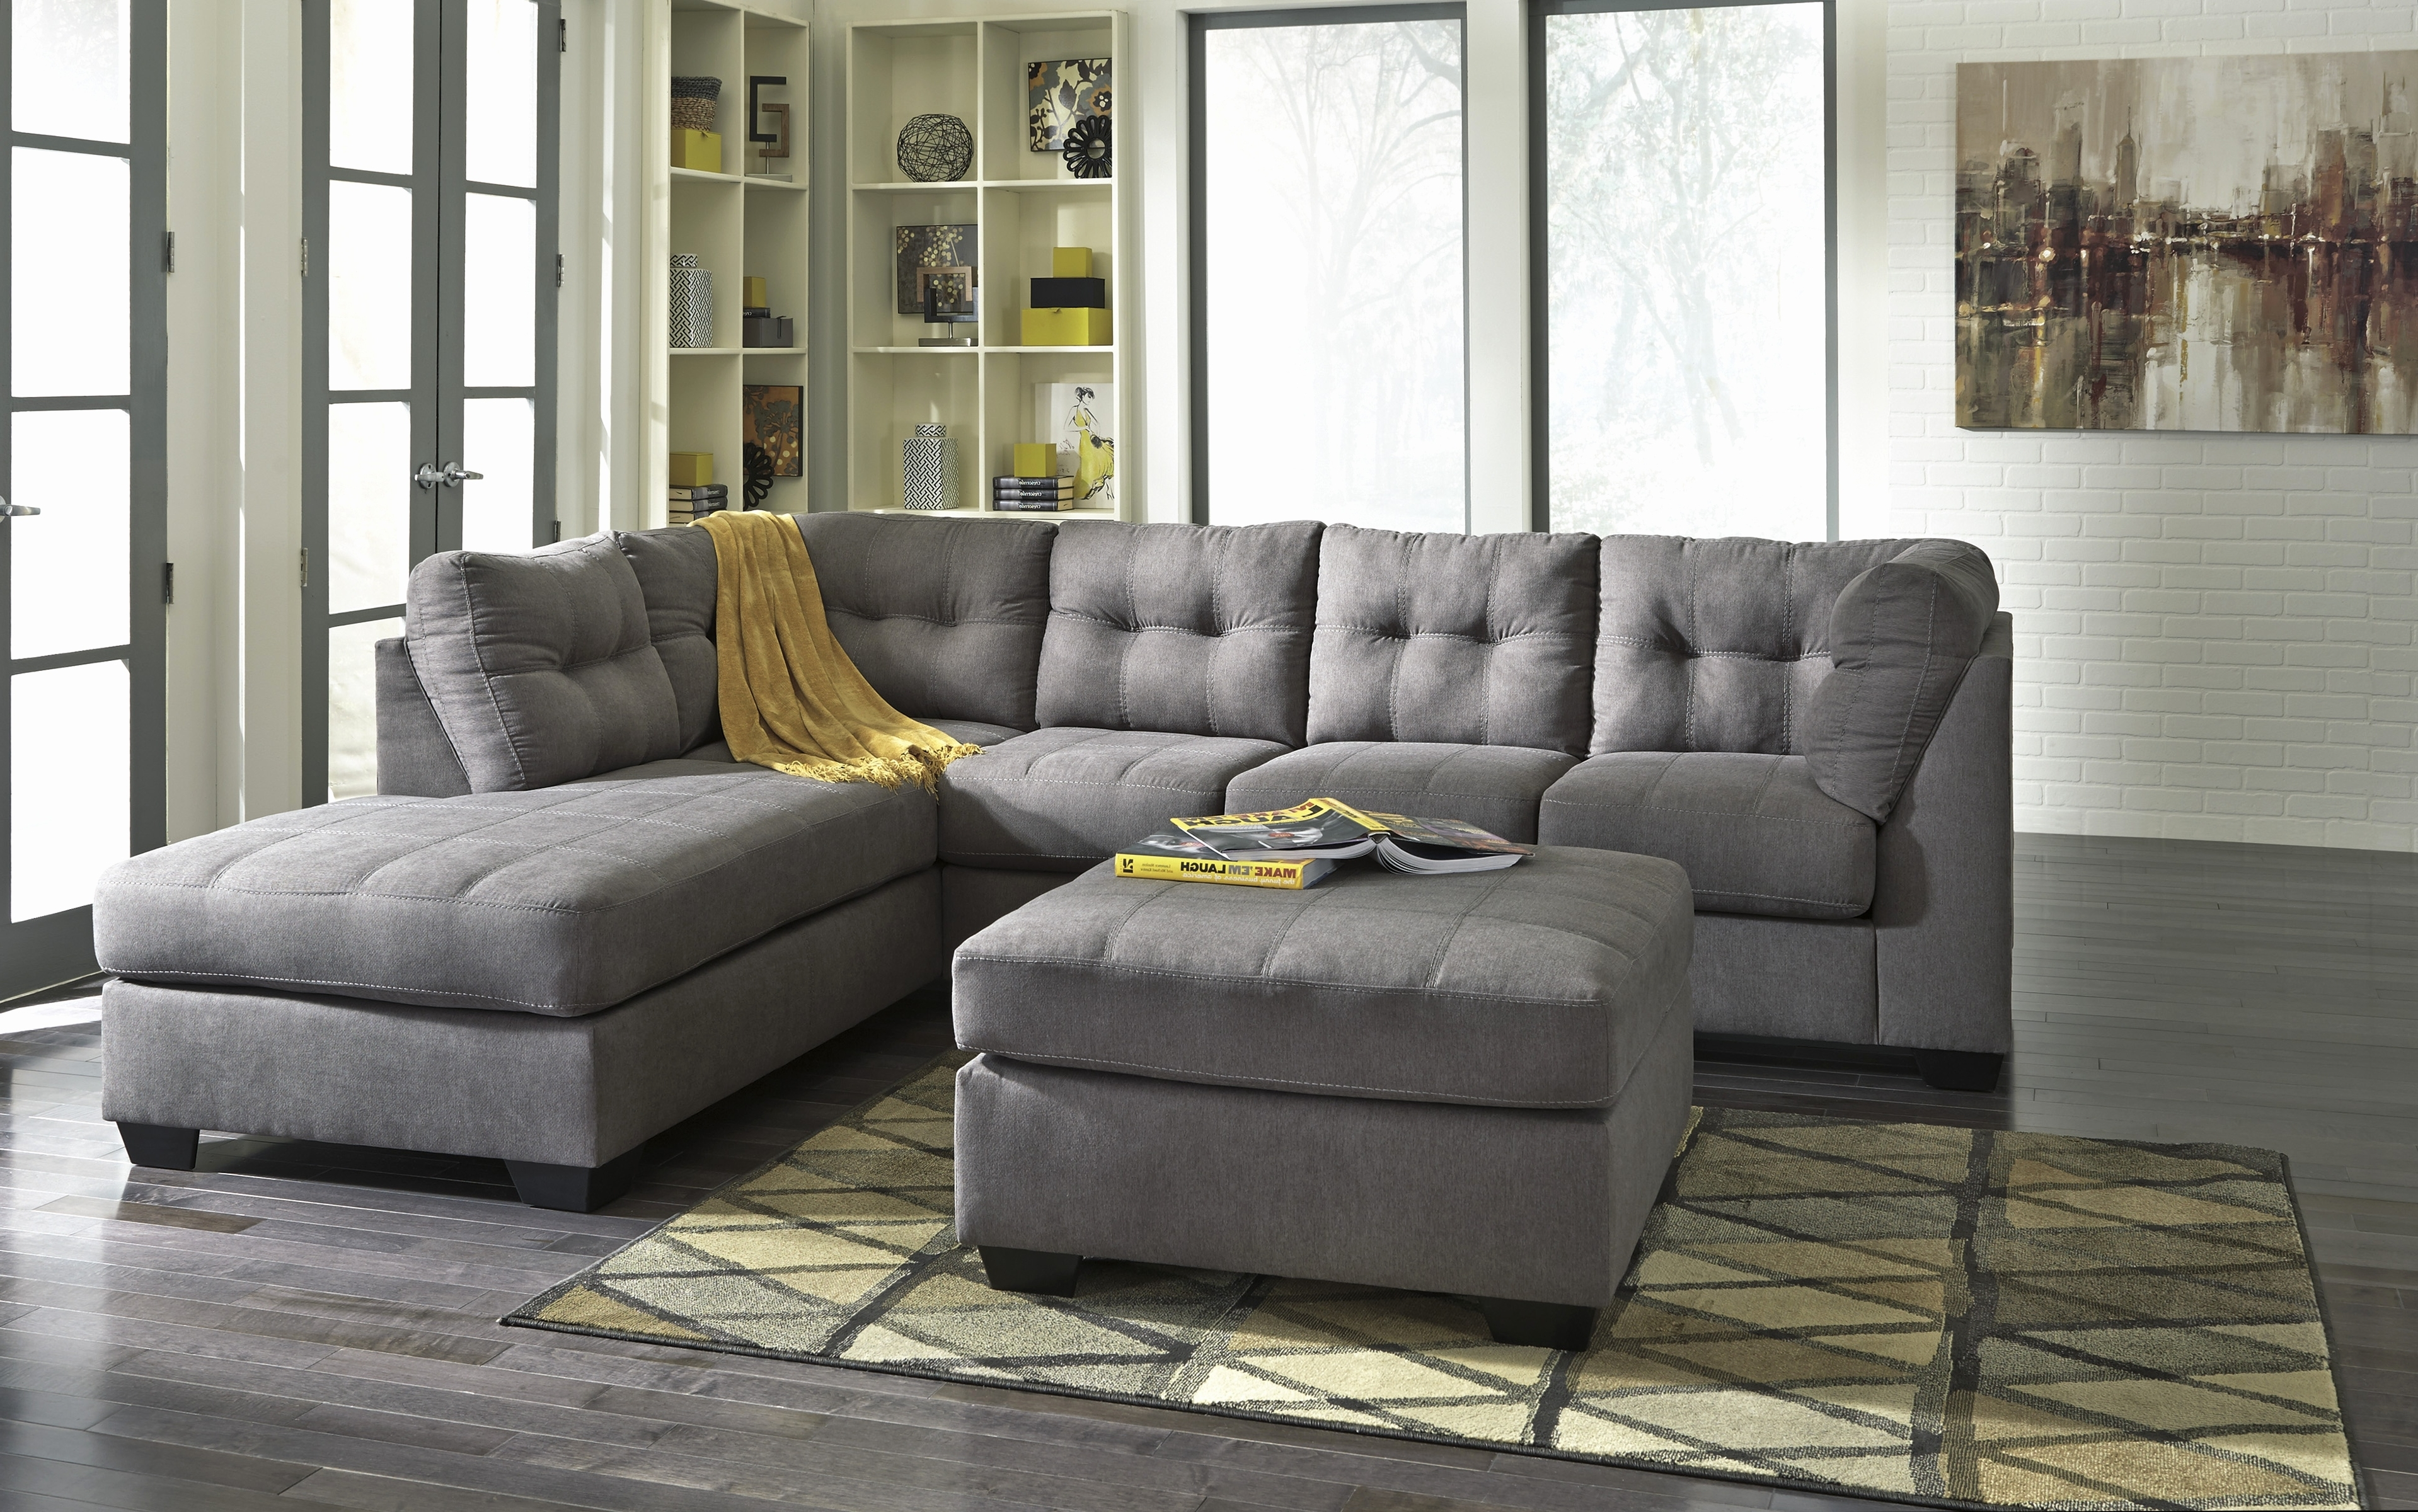 Grey Sectional Sofa Ashley Furniture 1025Theparty Com With Sofas In 2017 Sectional Sofas At Ashley Furniture (View 5 of 15)